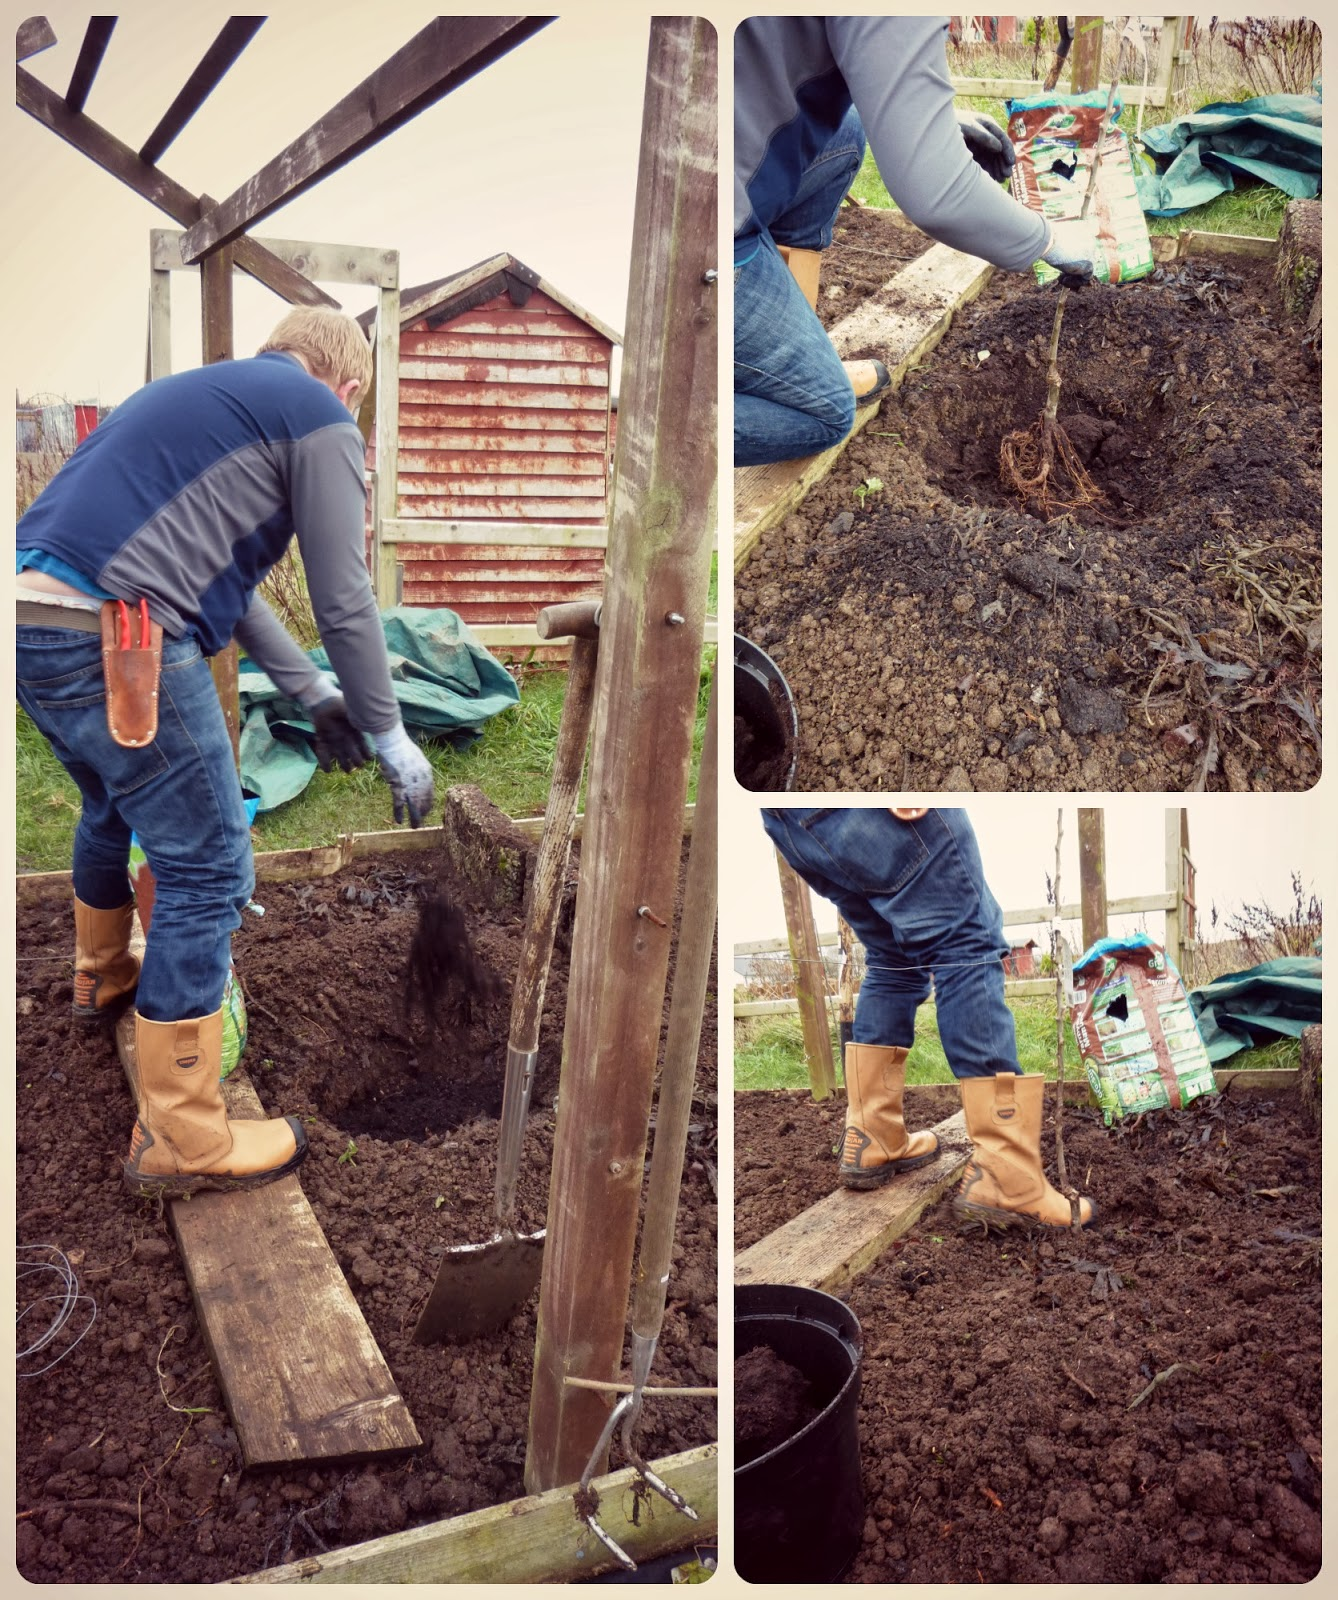 planting an apple tree (pt1)  - 'Grow Our Own' Allotment blog